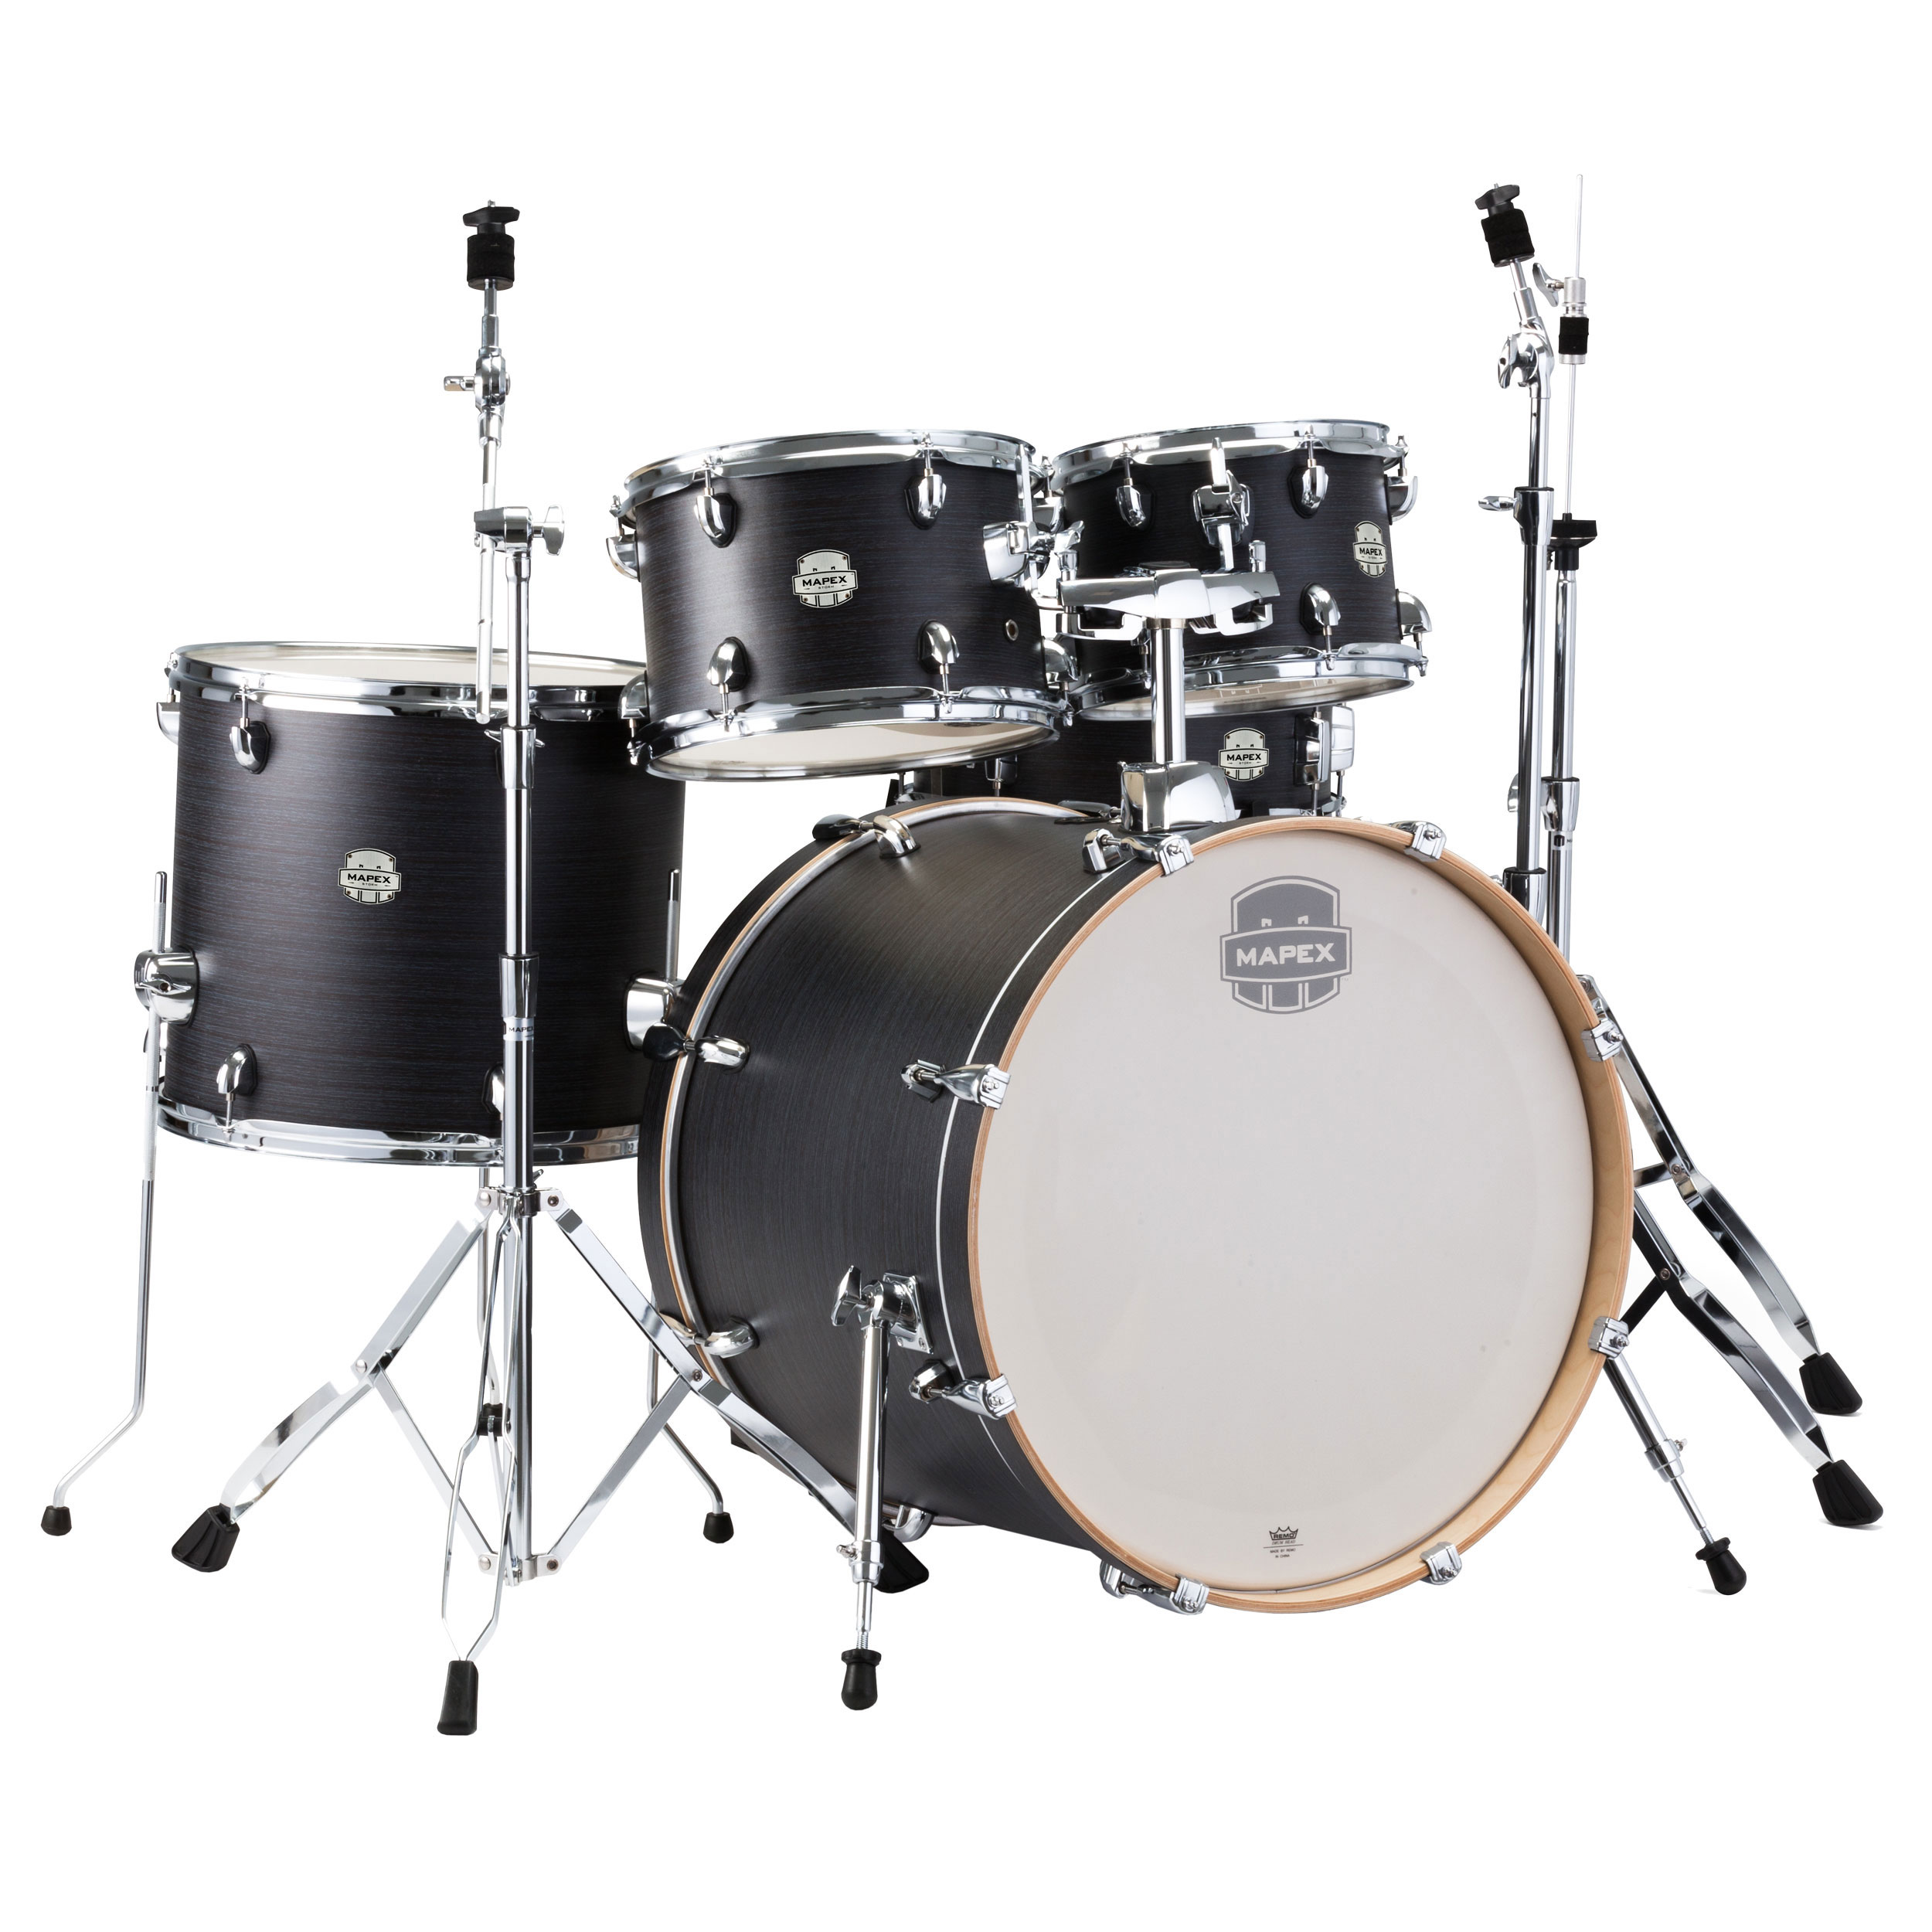 "Mapex Storm 5-Piece Fusion Drum Set (20"" Bass, 10/12/14"" Toms, 14"" Snare) with Hardware"